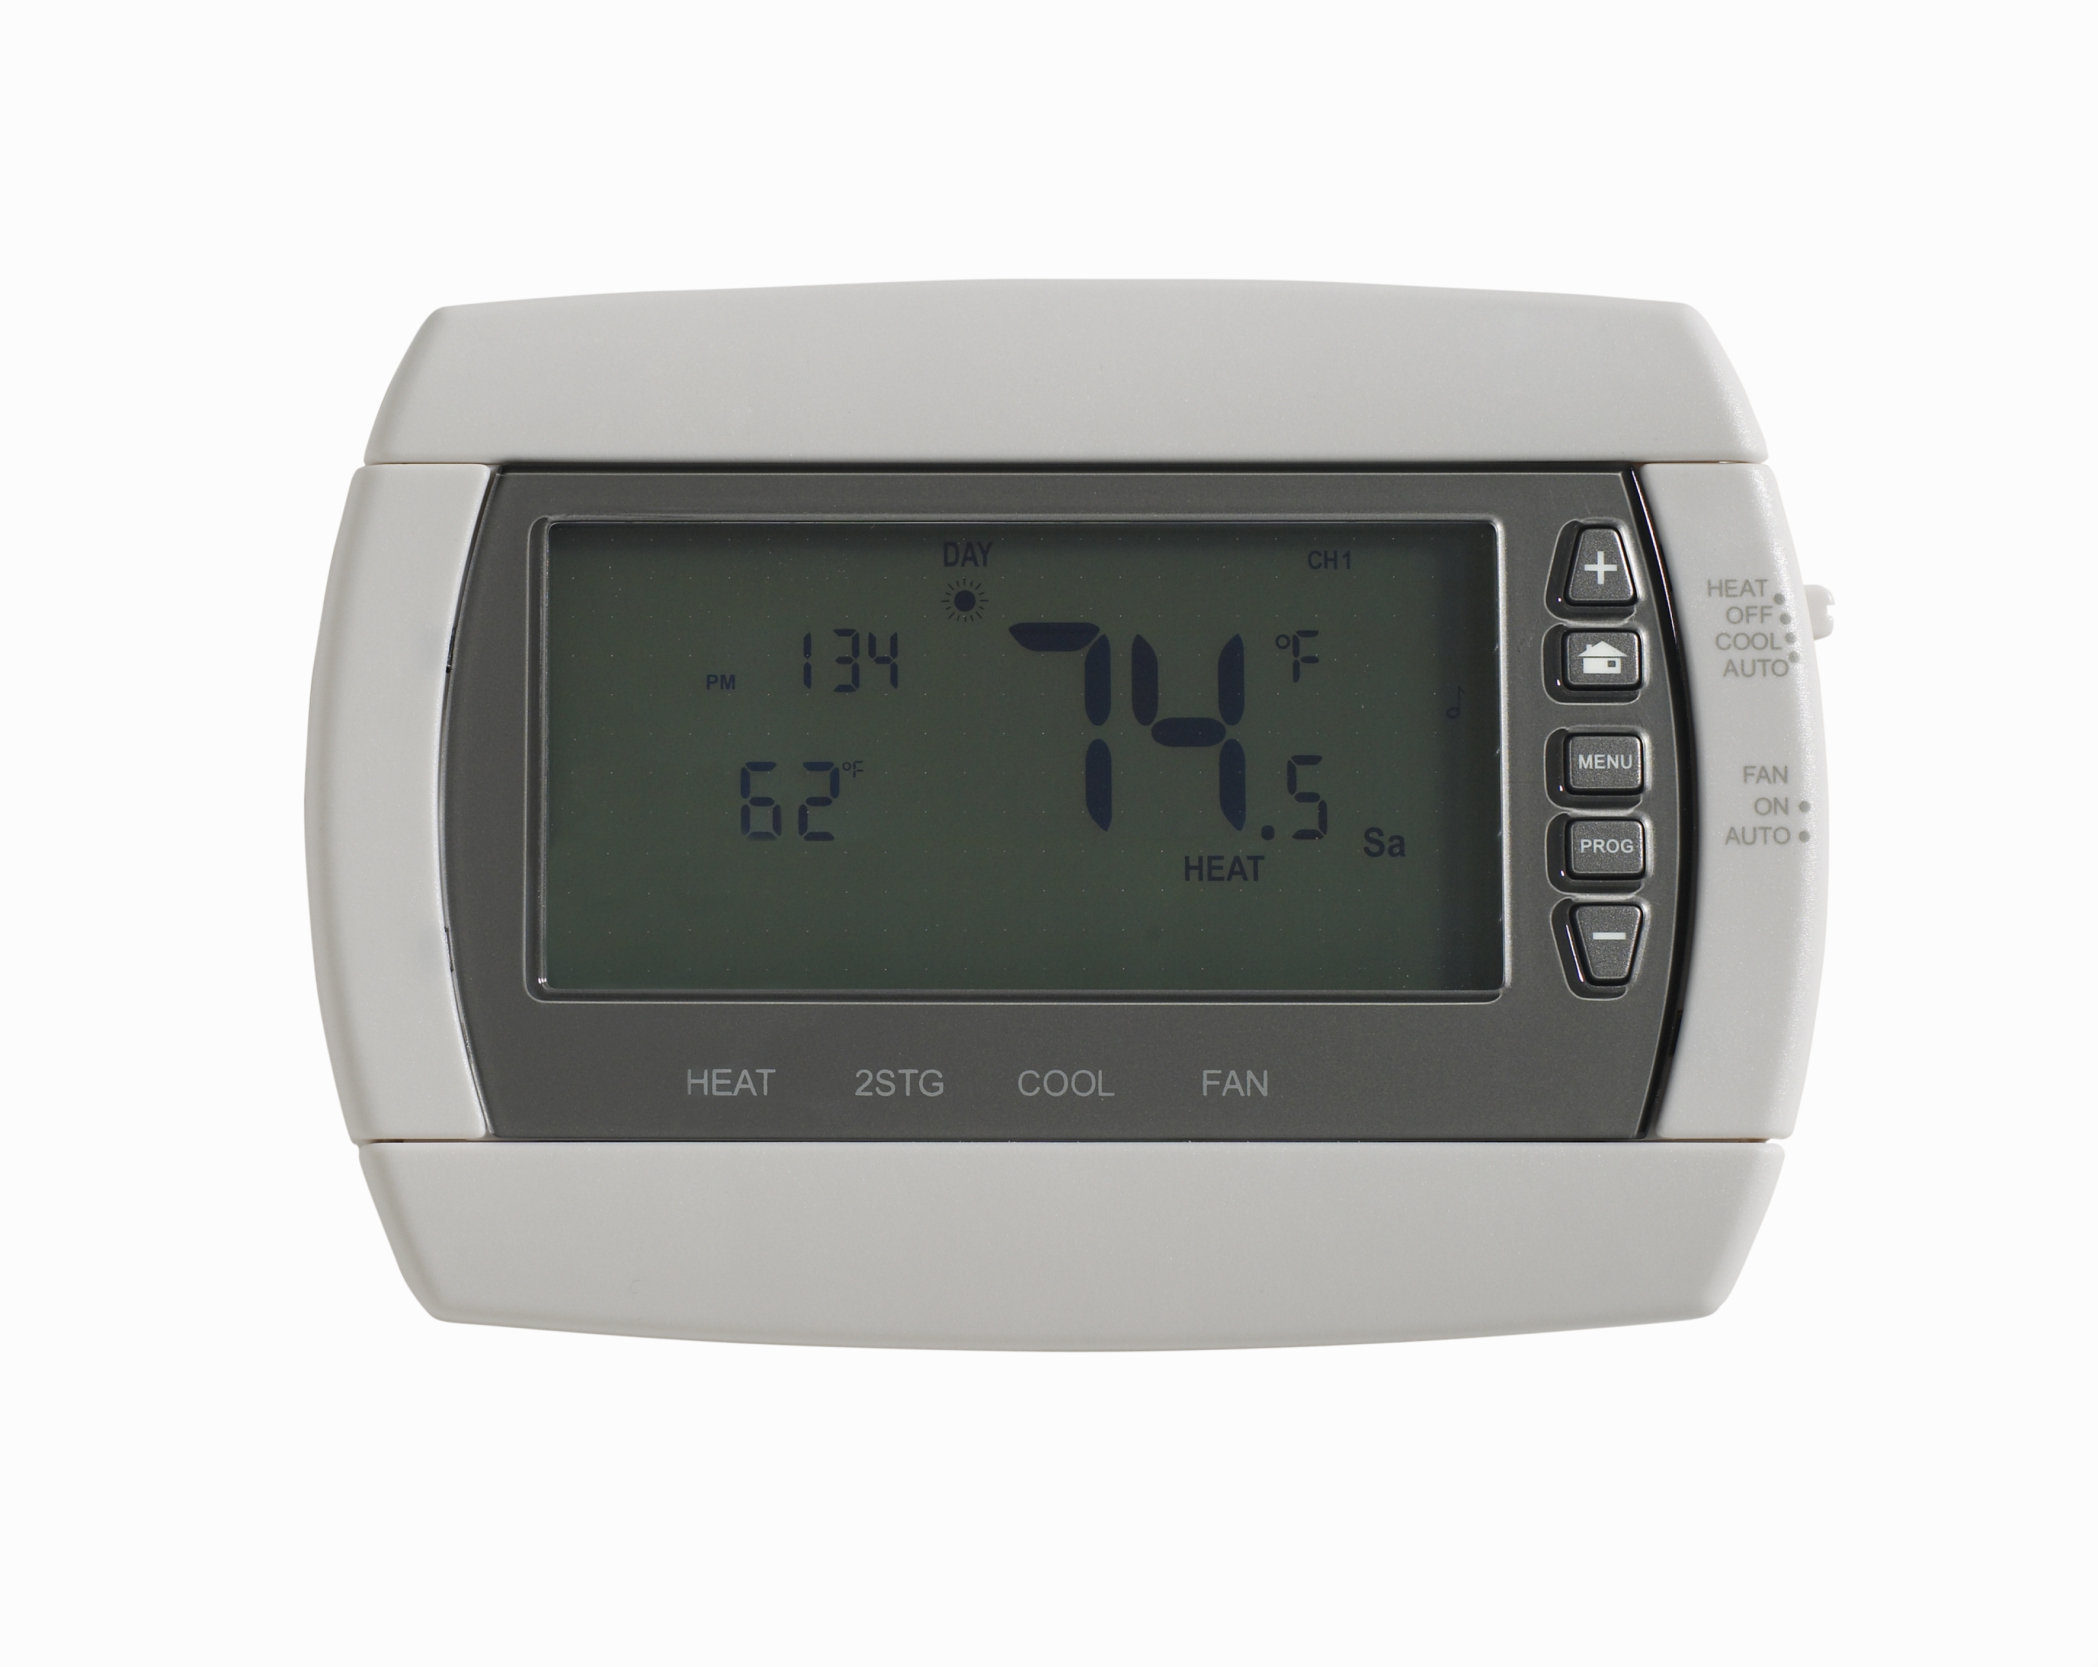 How to Program a Honeywell Digital Thermostat | Hunker